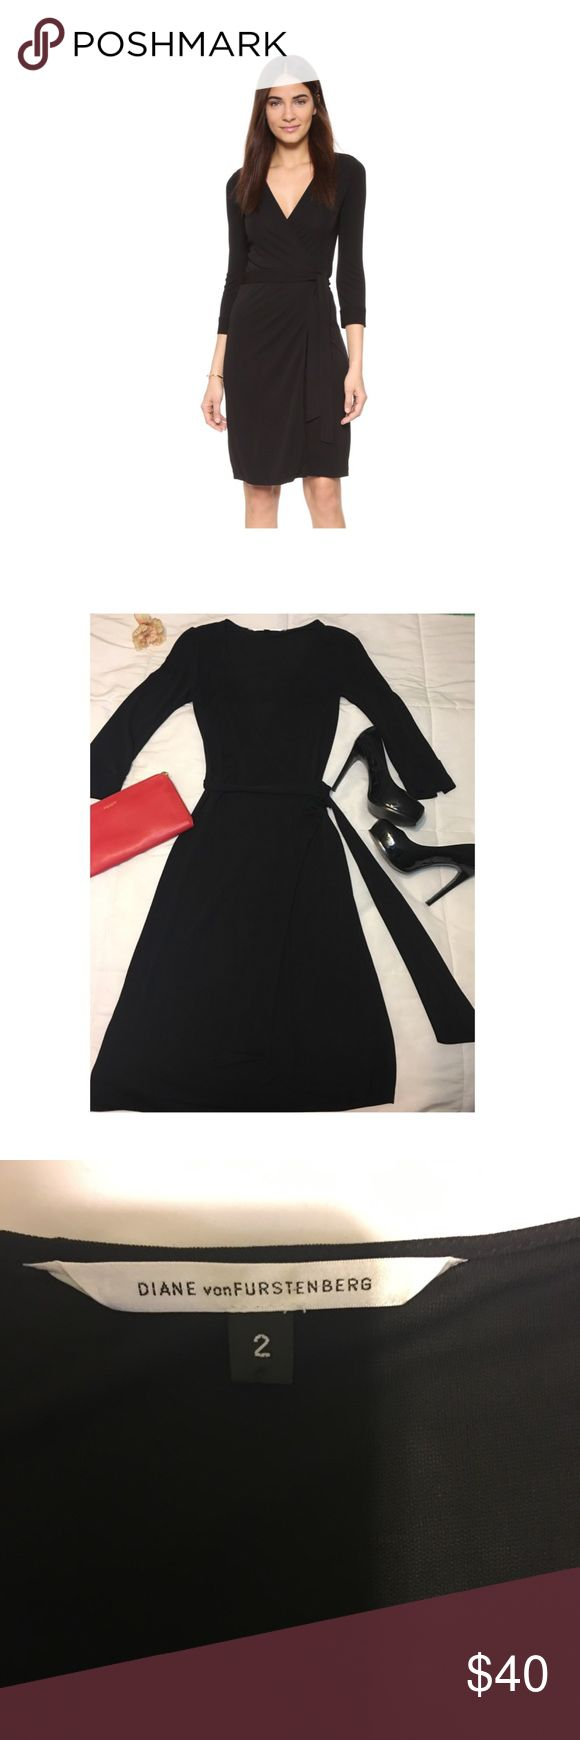 Classic Black Wrap Dress Gently worn. Excellent condition. Labeled DVF but cannot authenticate. other Dresses